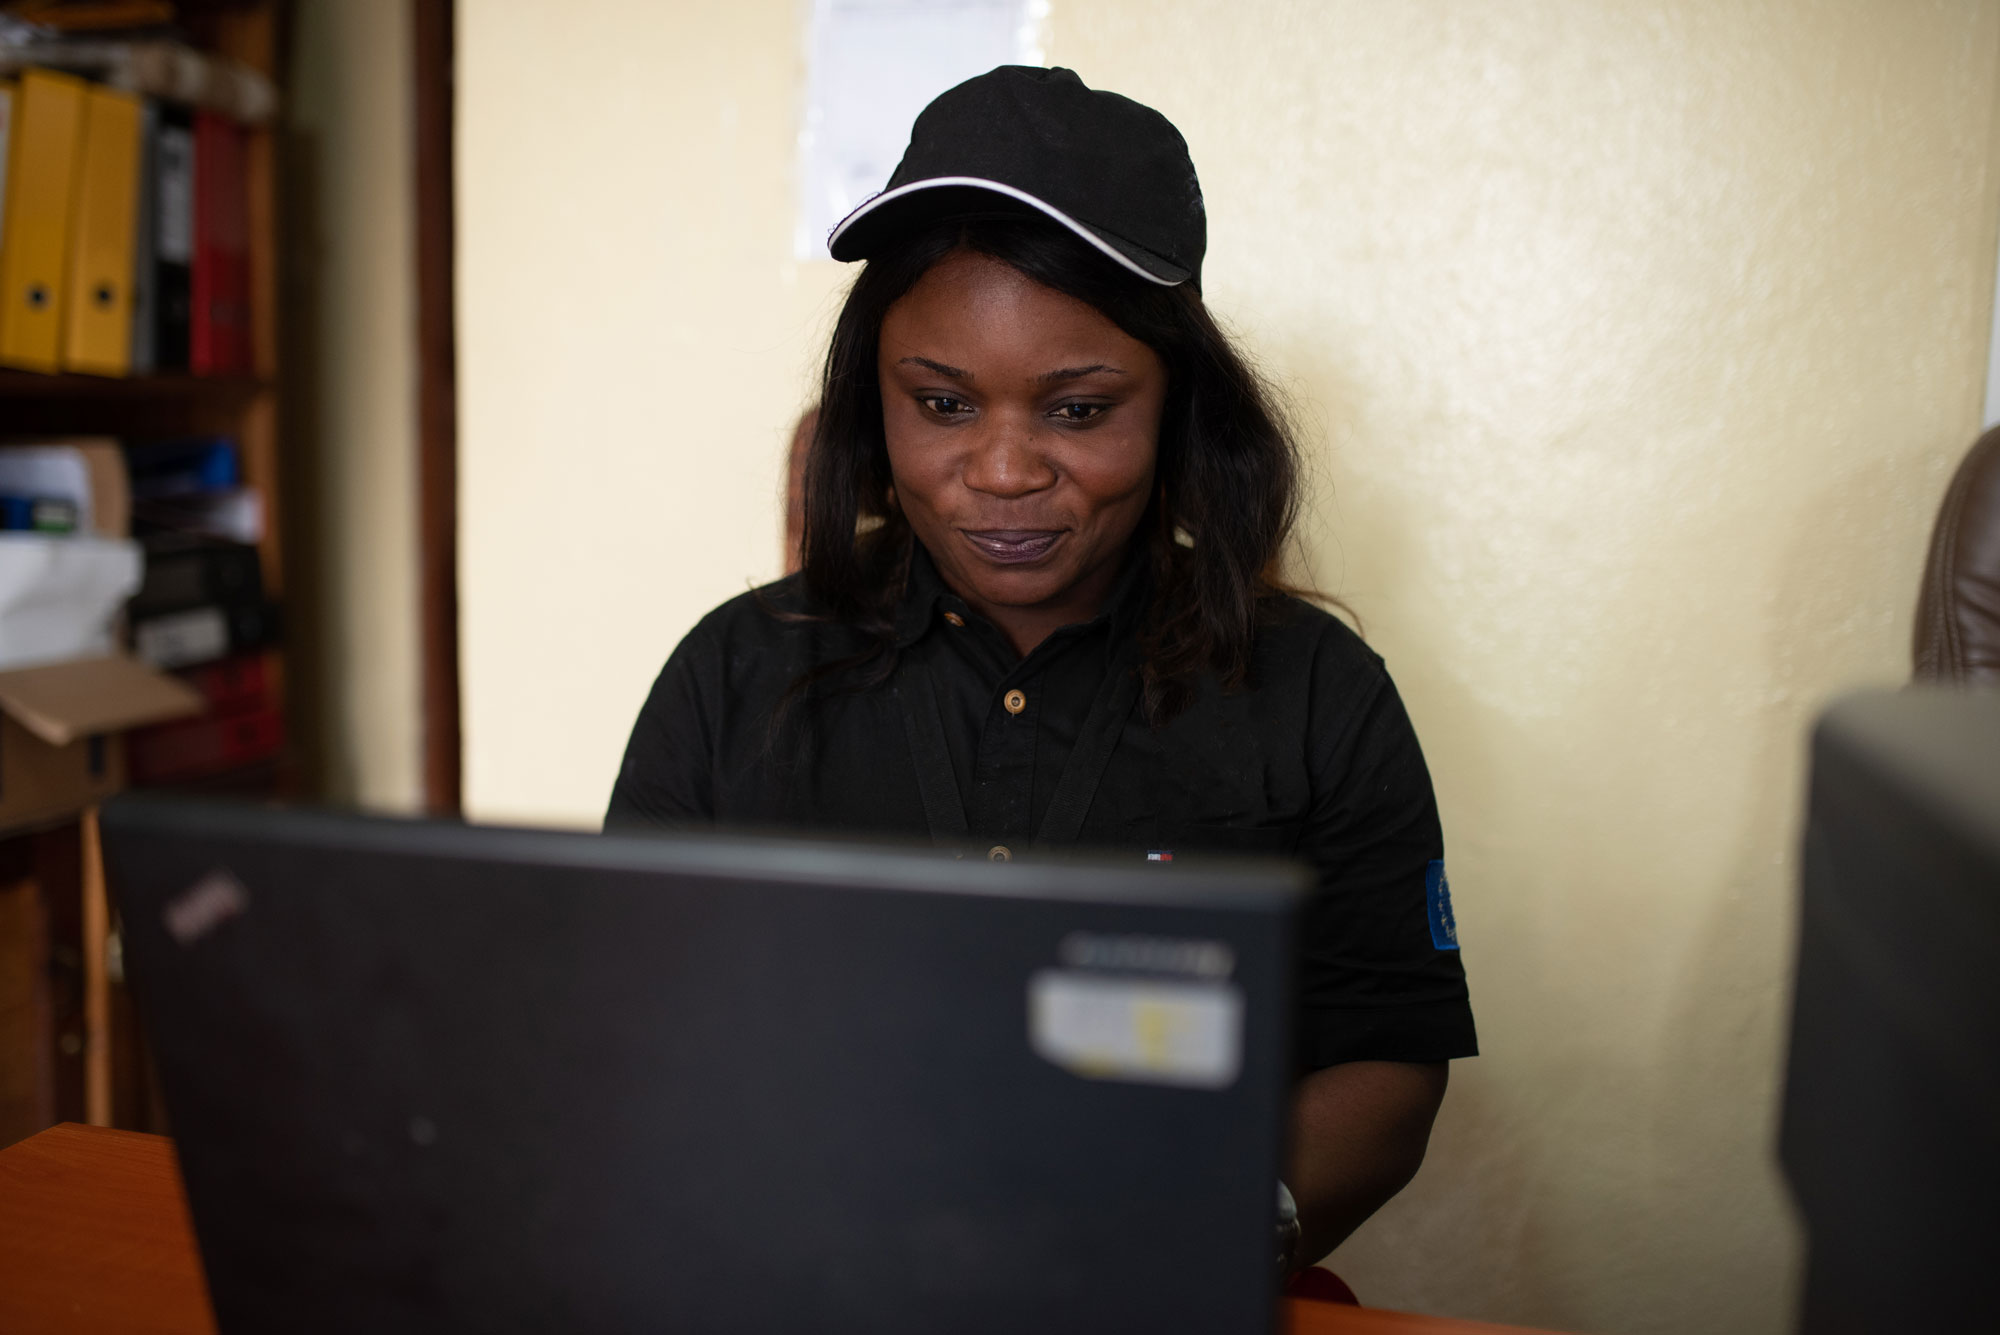 A refugee resettlement caseworker looking at her computer while at work. IRC/OAcland